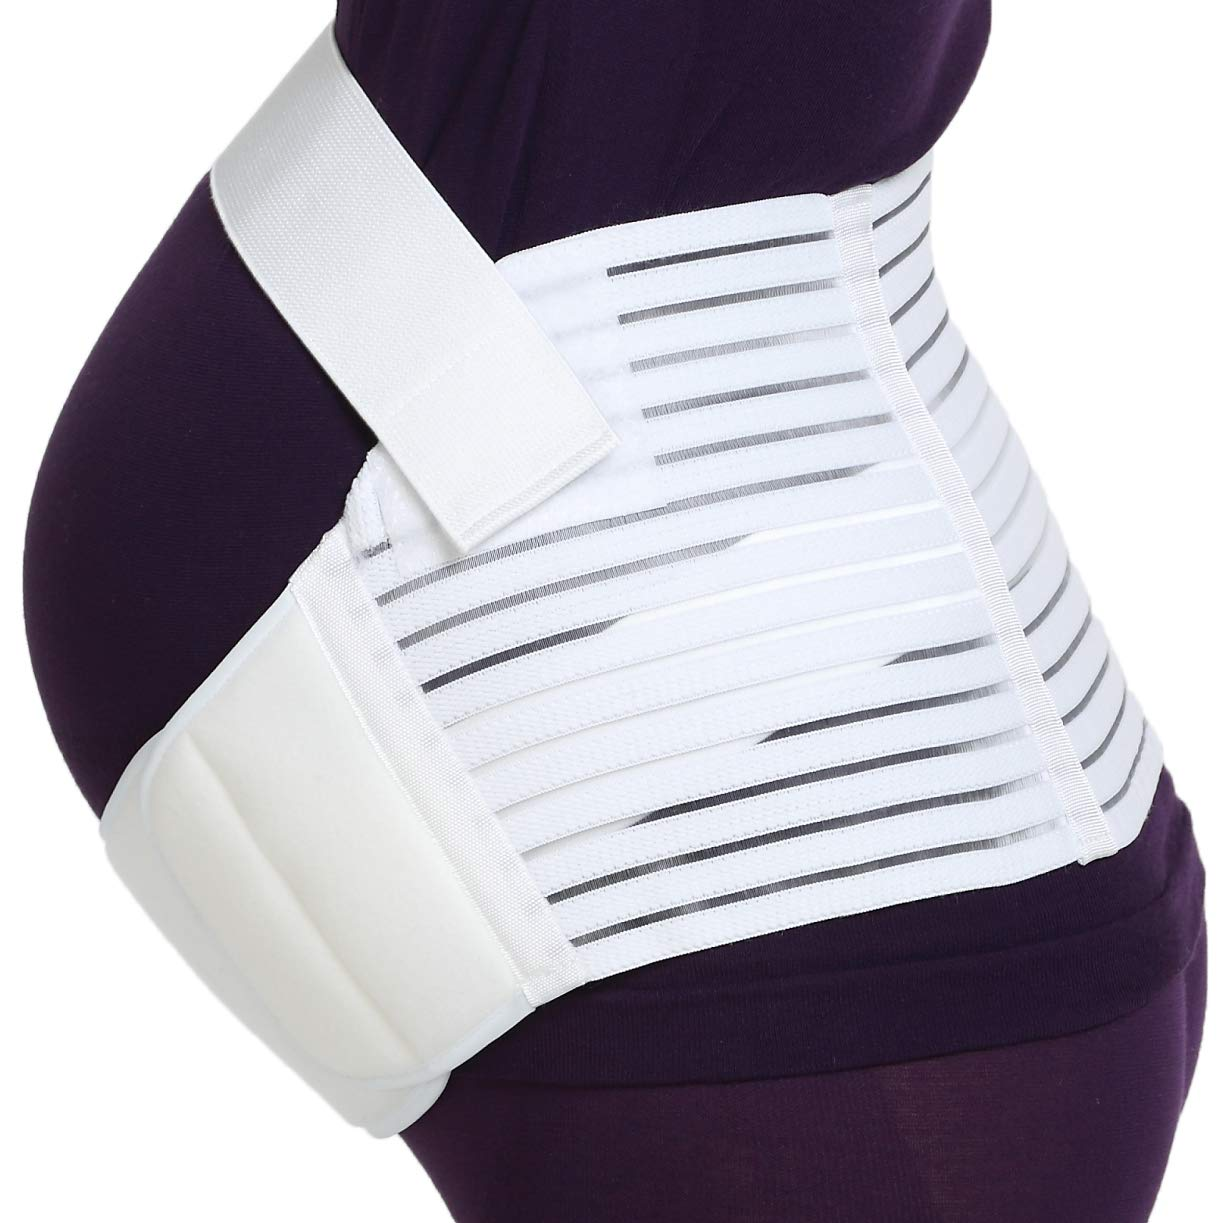 Top 7 Best Back Brace For Herniated Disc 5